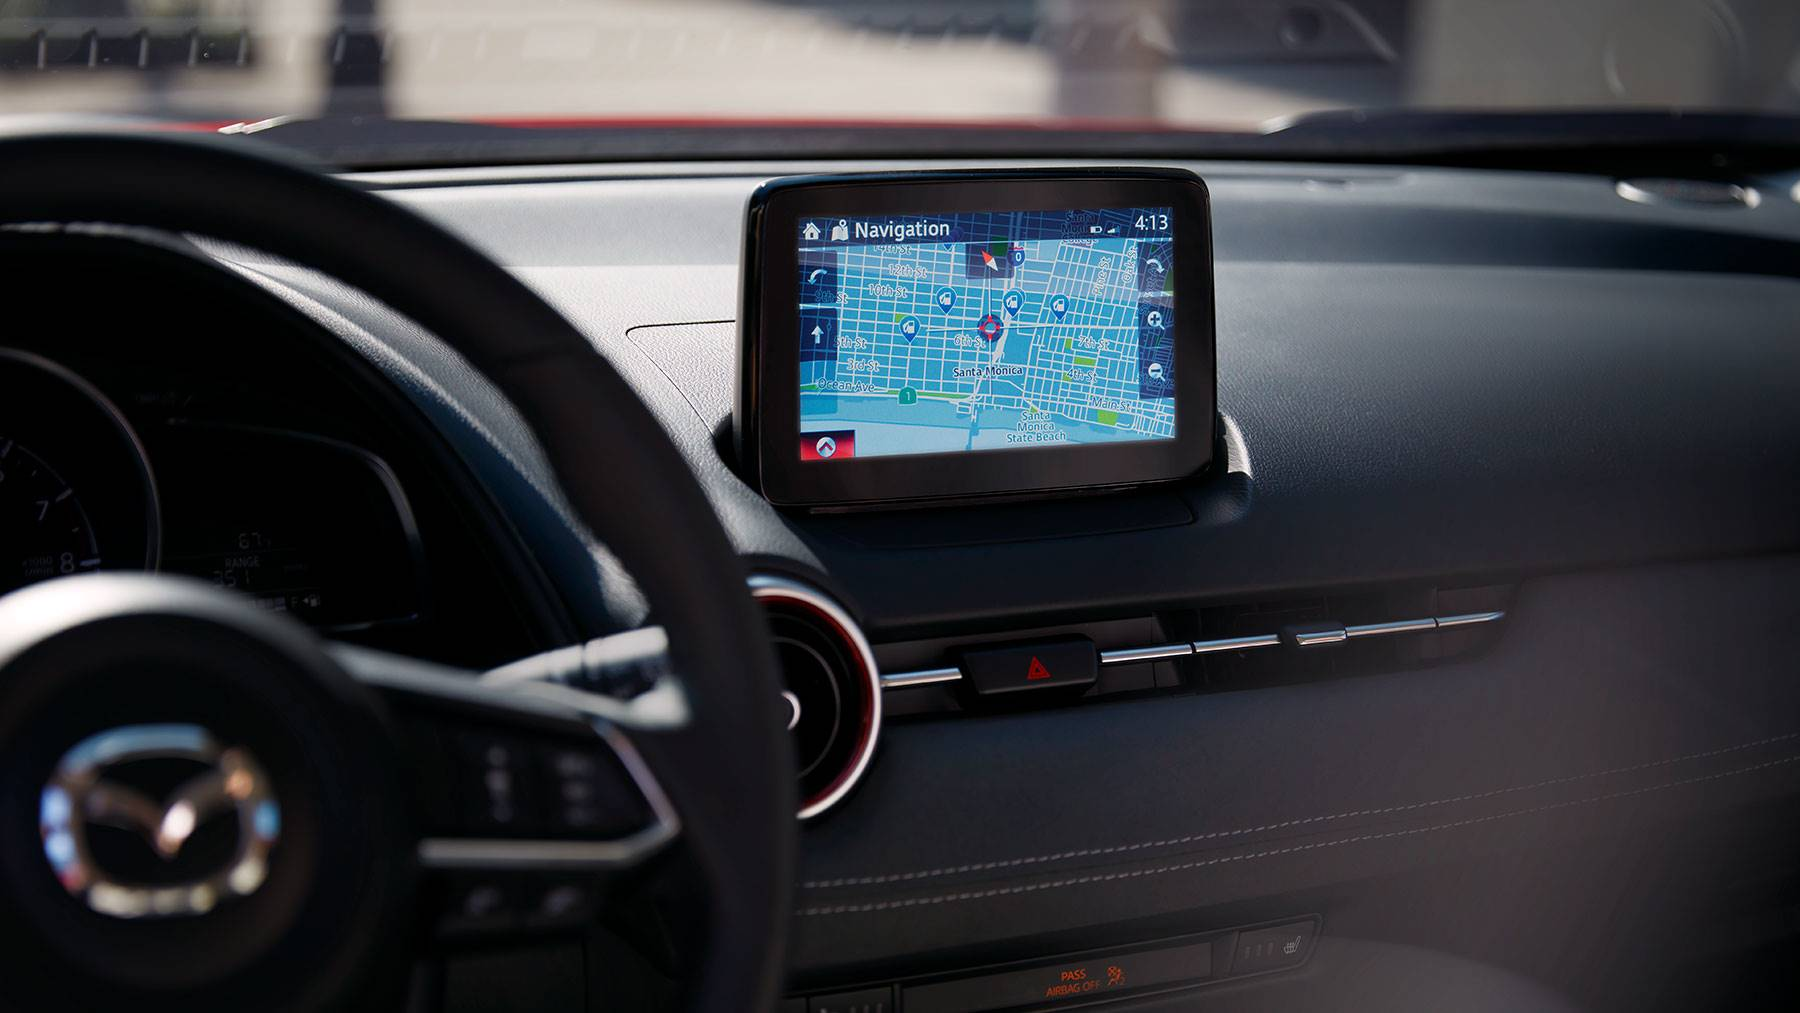 Navigation Tech in the Mazda CX-3